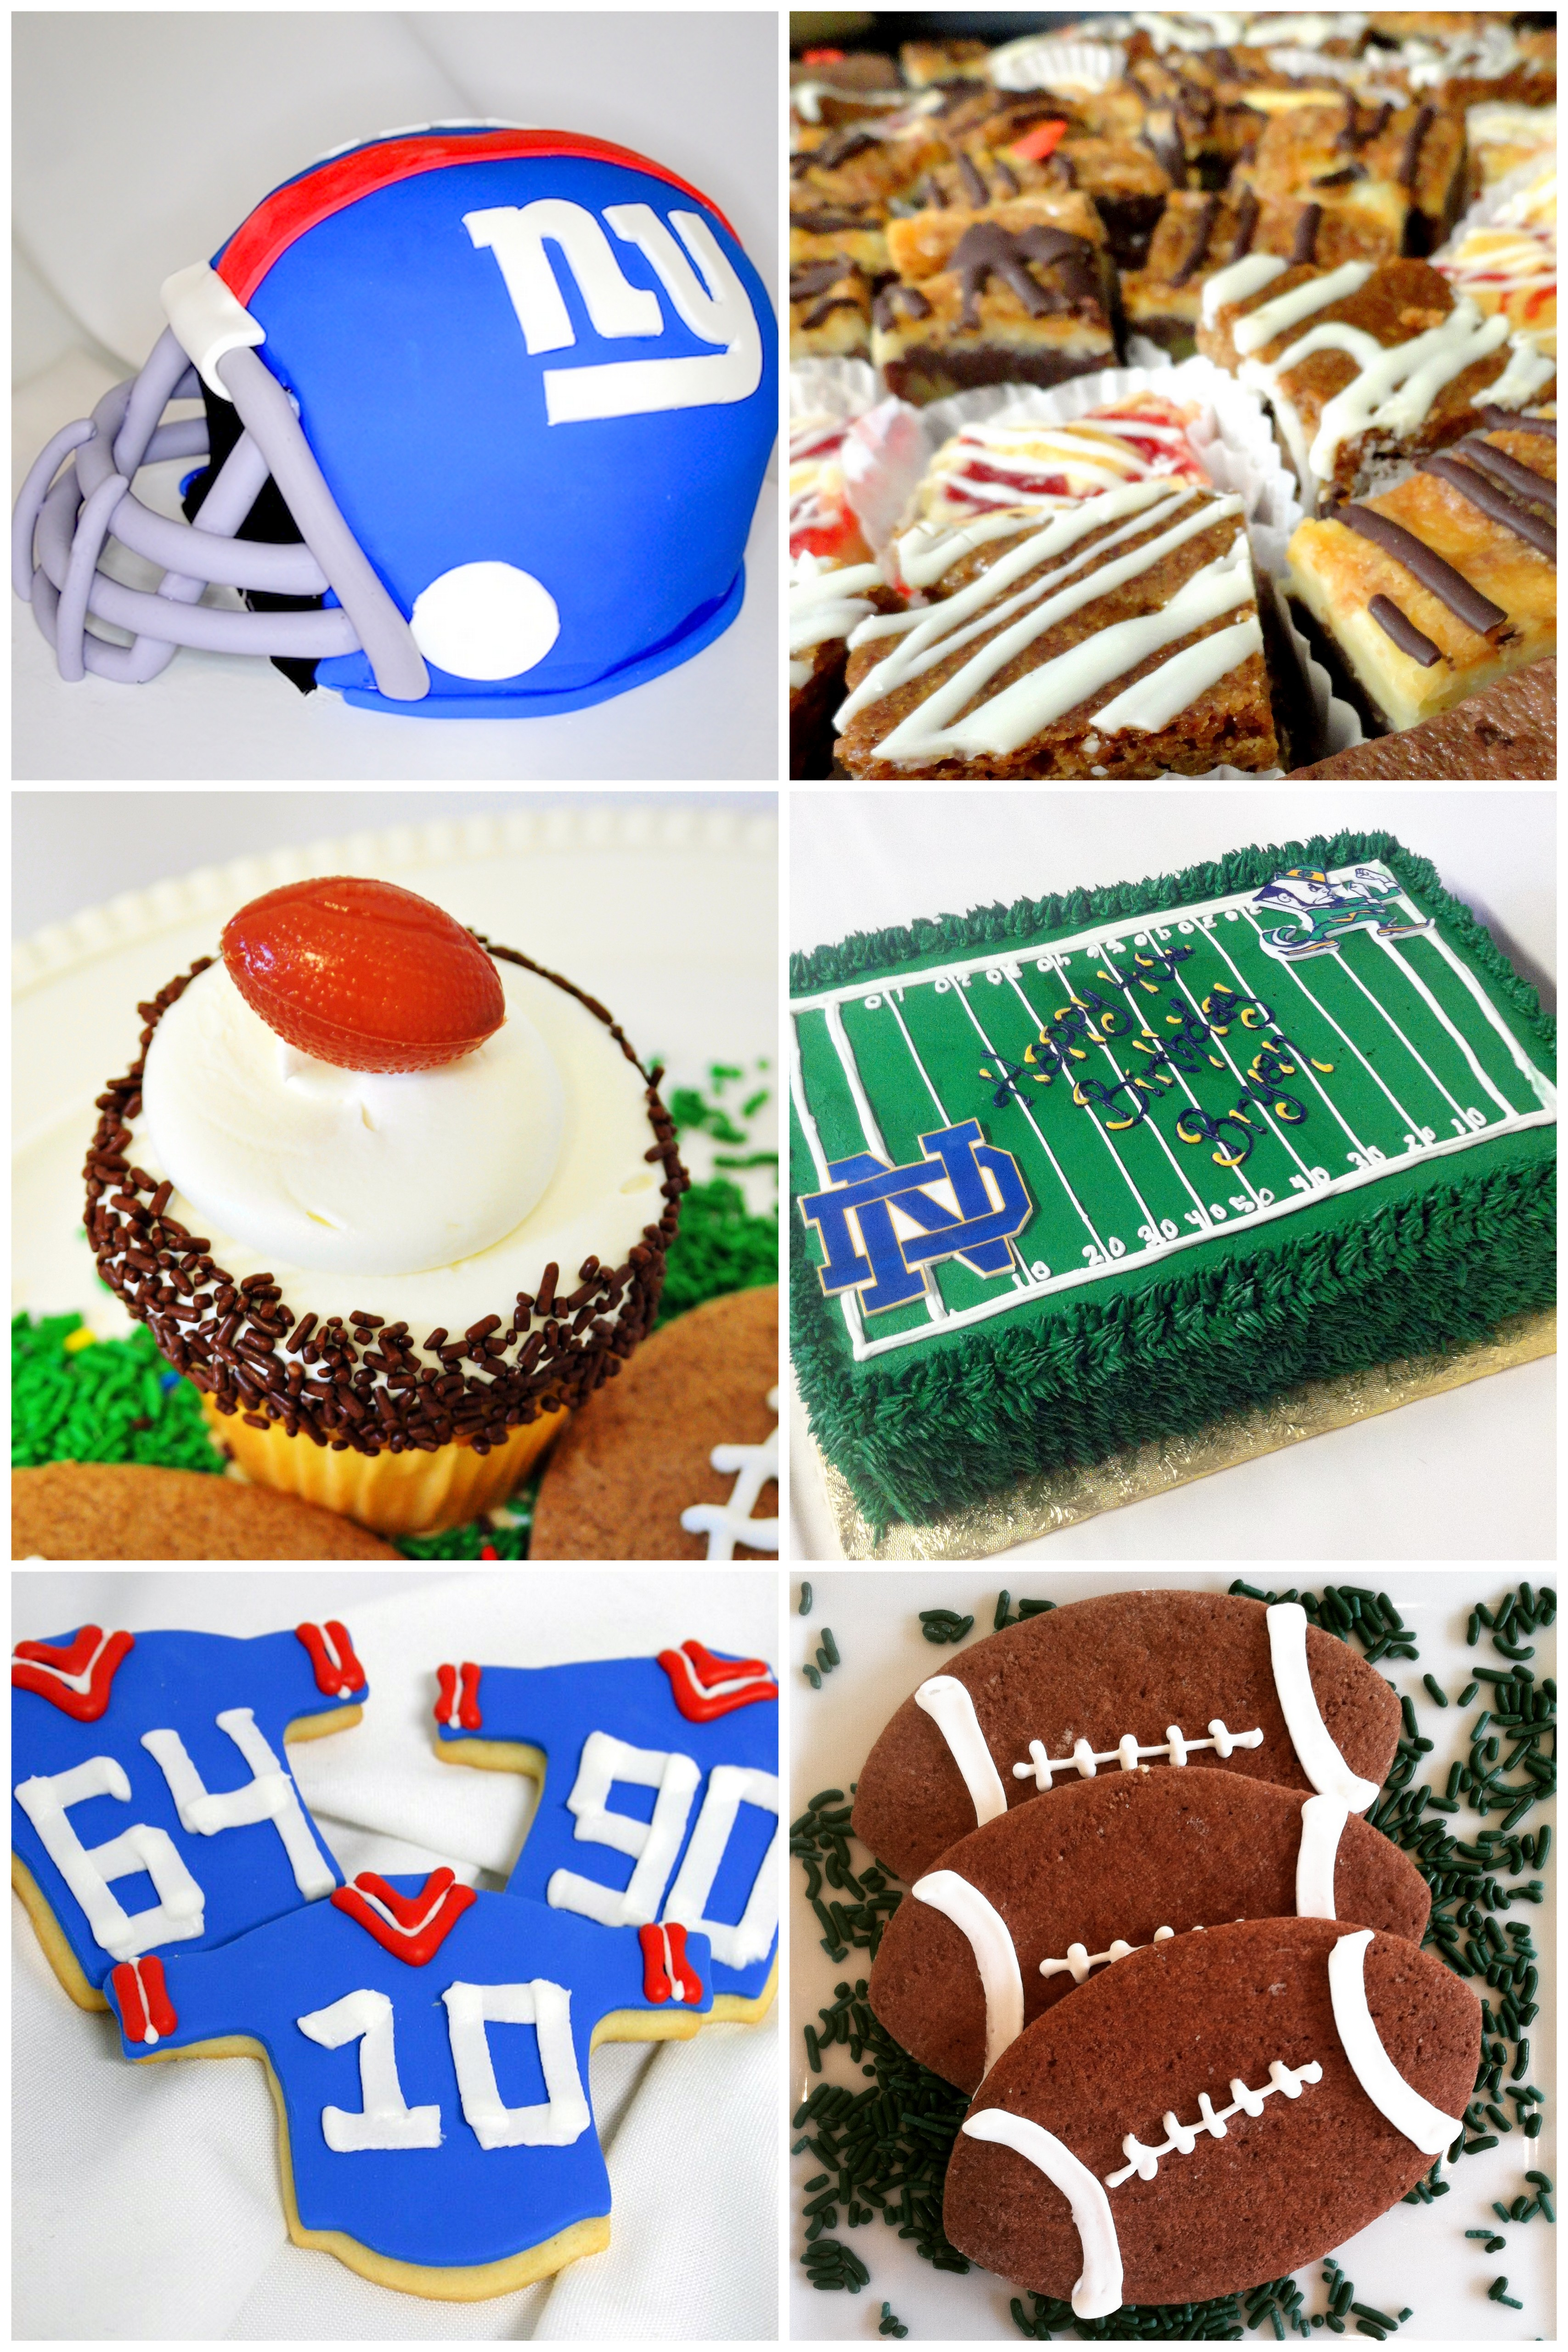 GAME DAY SUPERBOWL DESSERTS, FOOTBALL, SUSSEX COUNTY SPARTA NJ